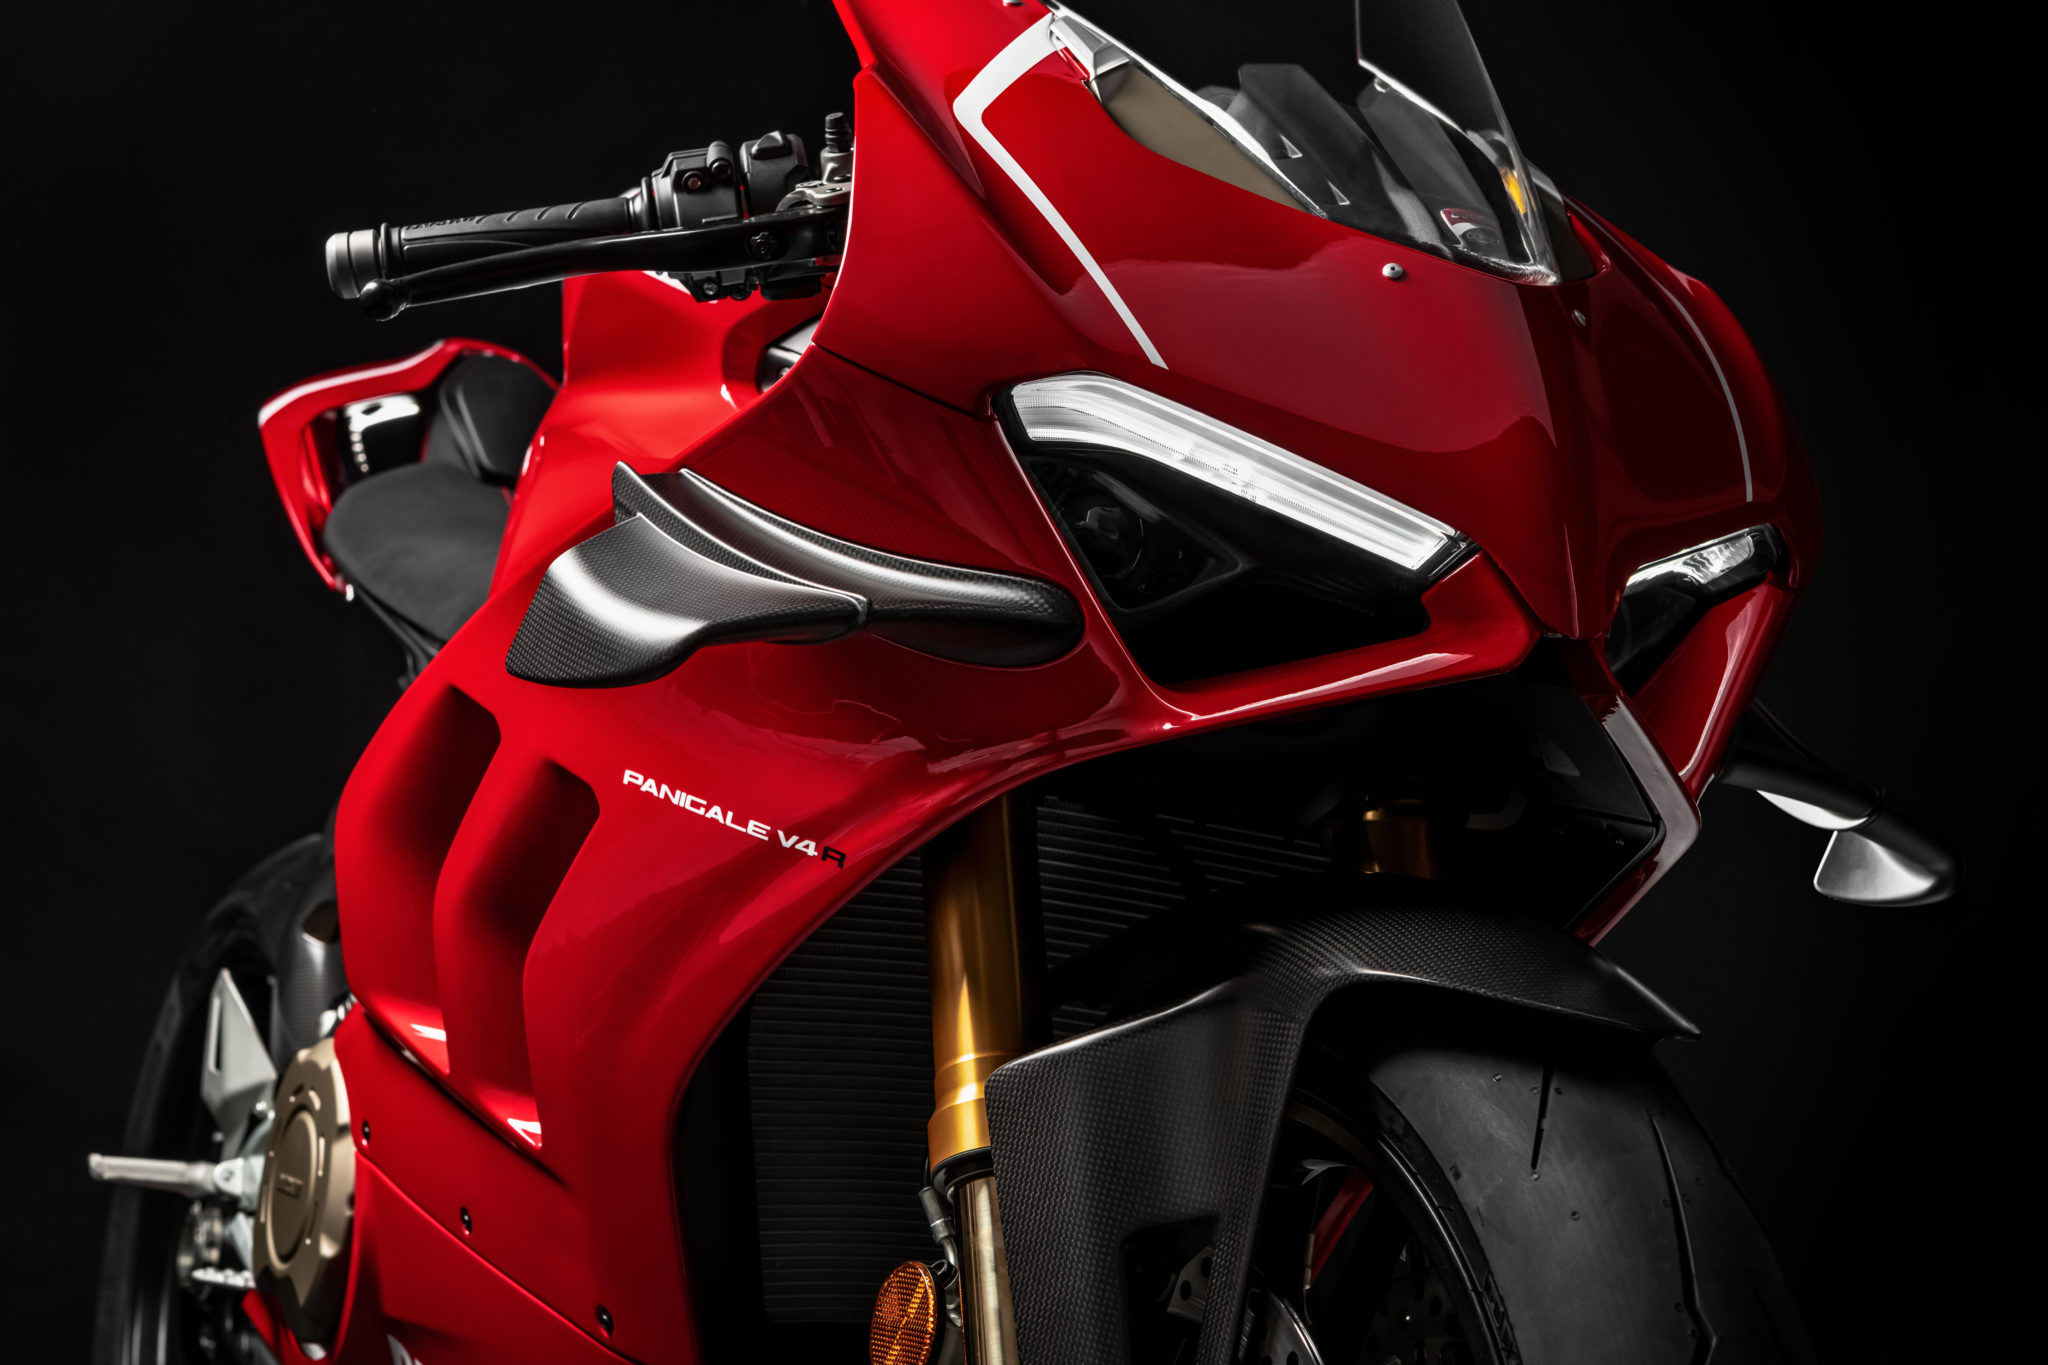 Ducati Panigale V4 R arrives with 221 hp and lots of torque!